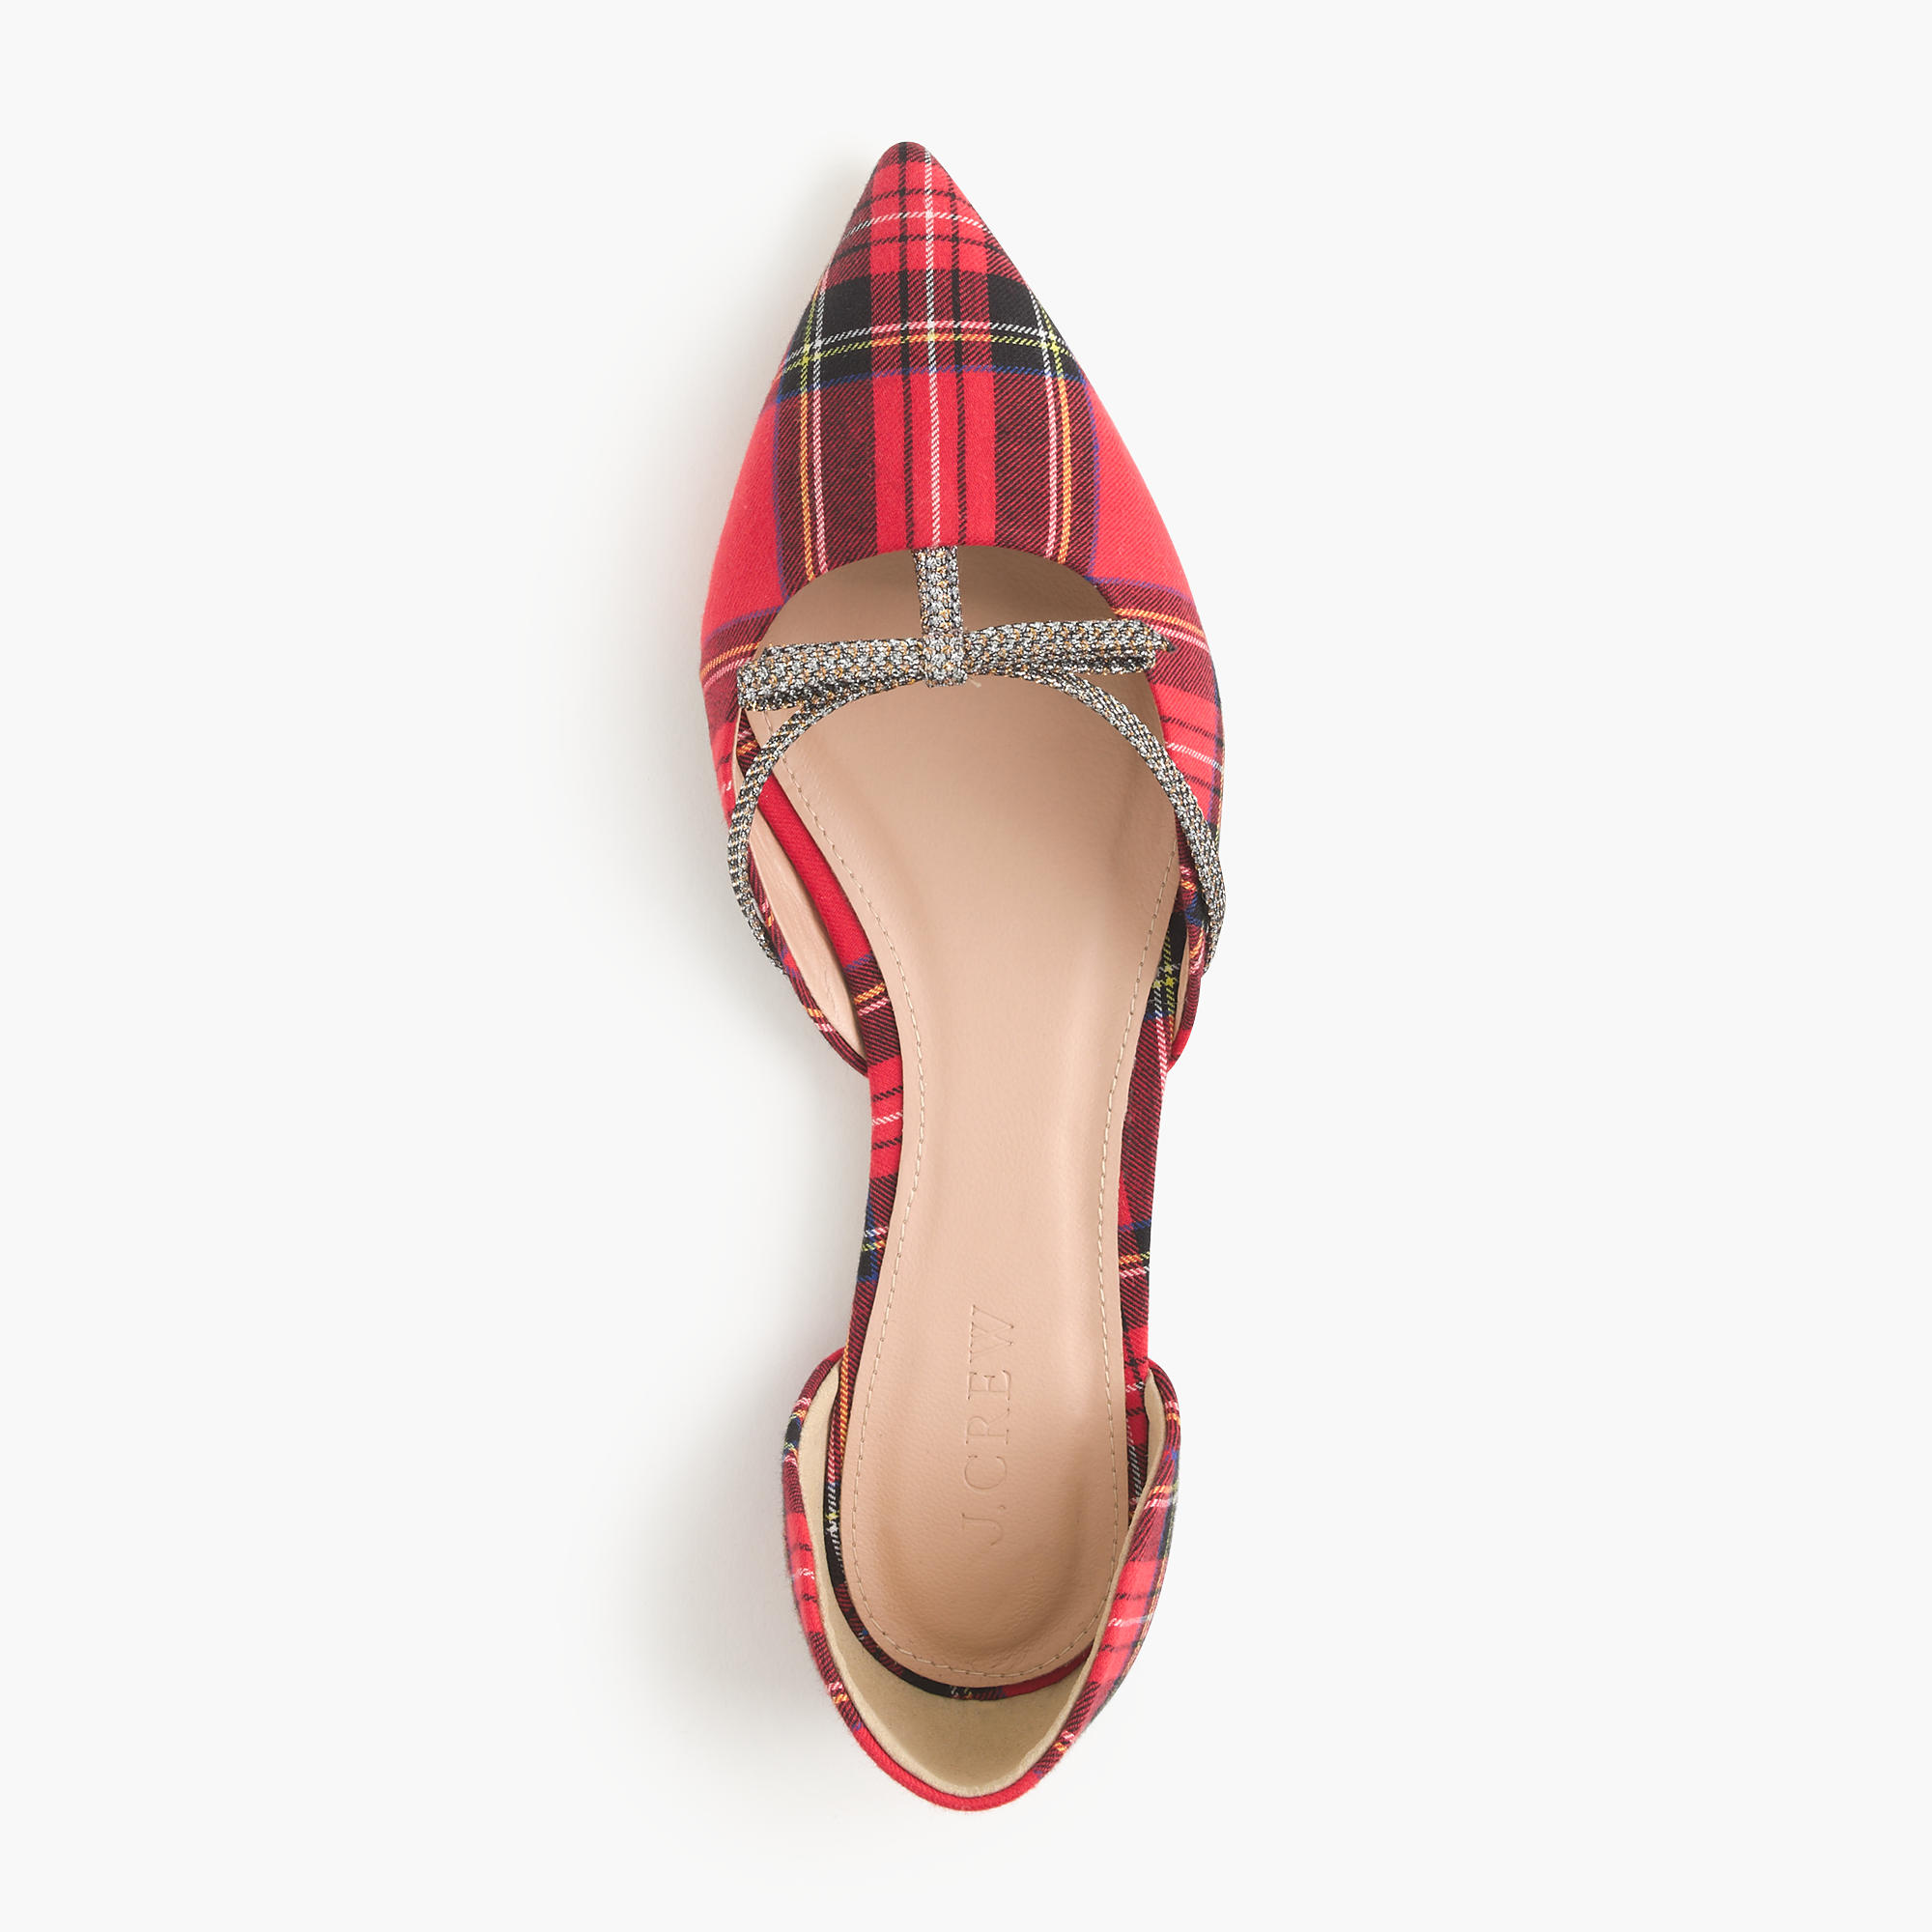 J Crew Sloan Plaid D'orsay Flats with Mini Bow